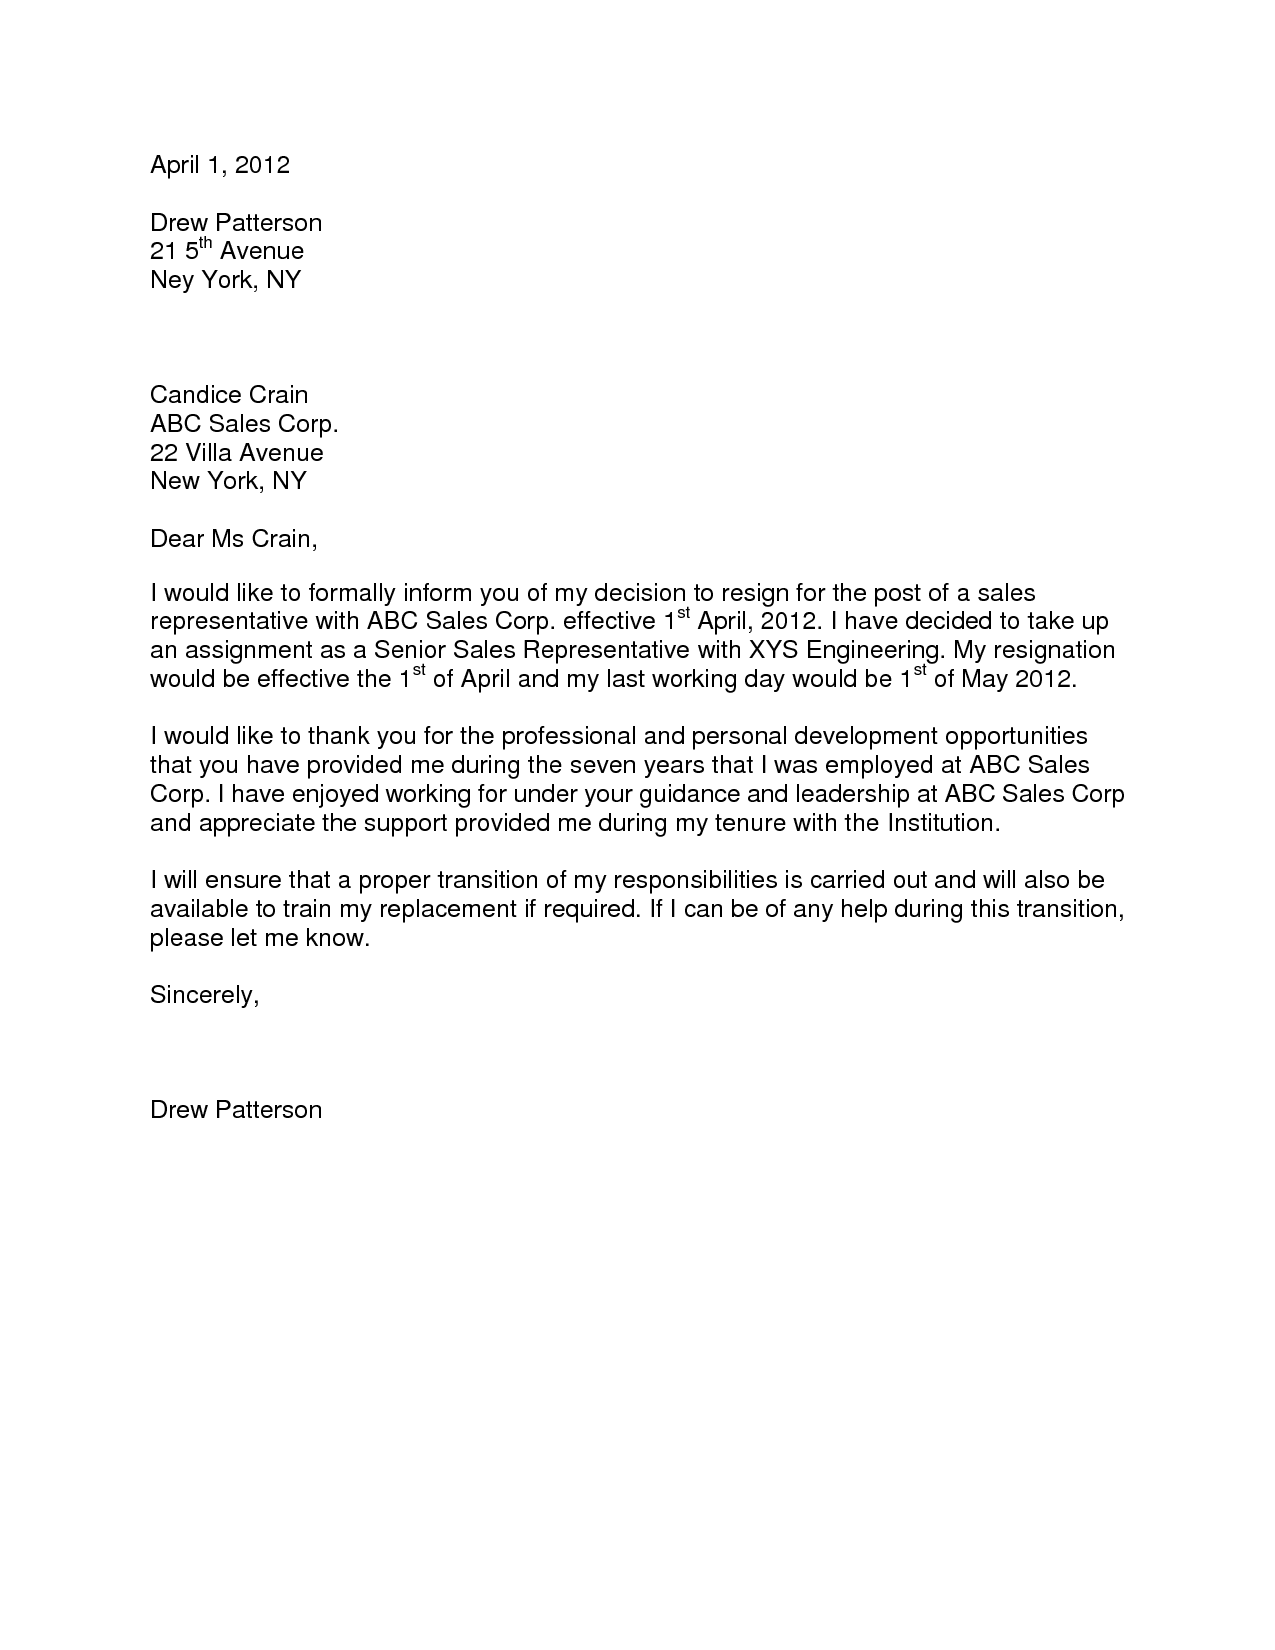 formal resignation letter 1 month notice Google Search